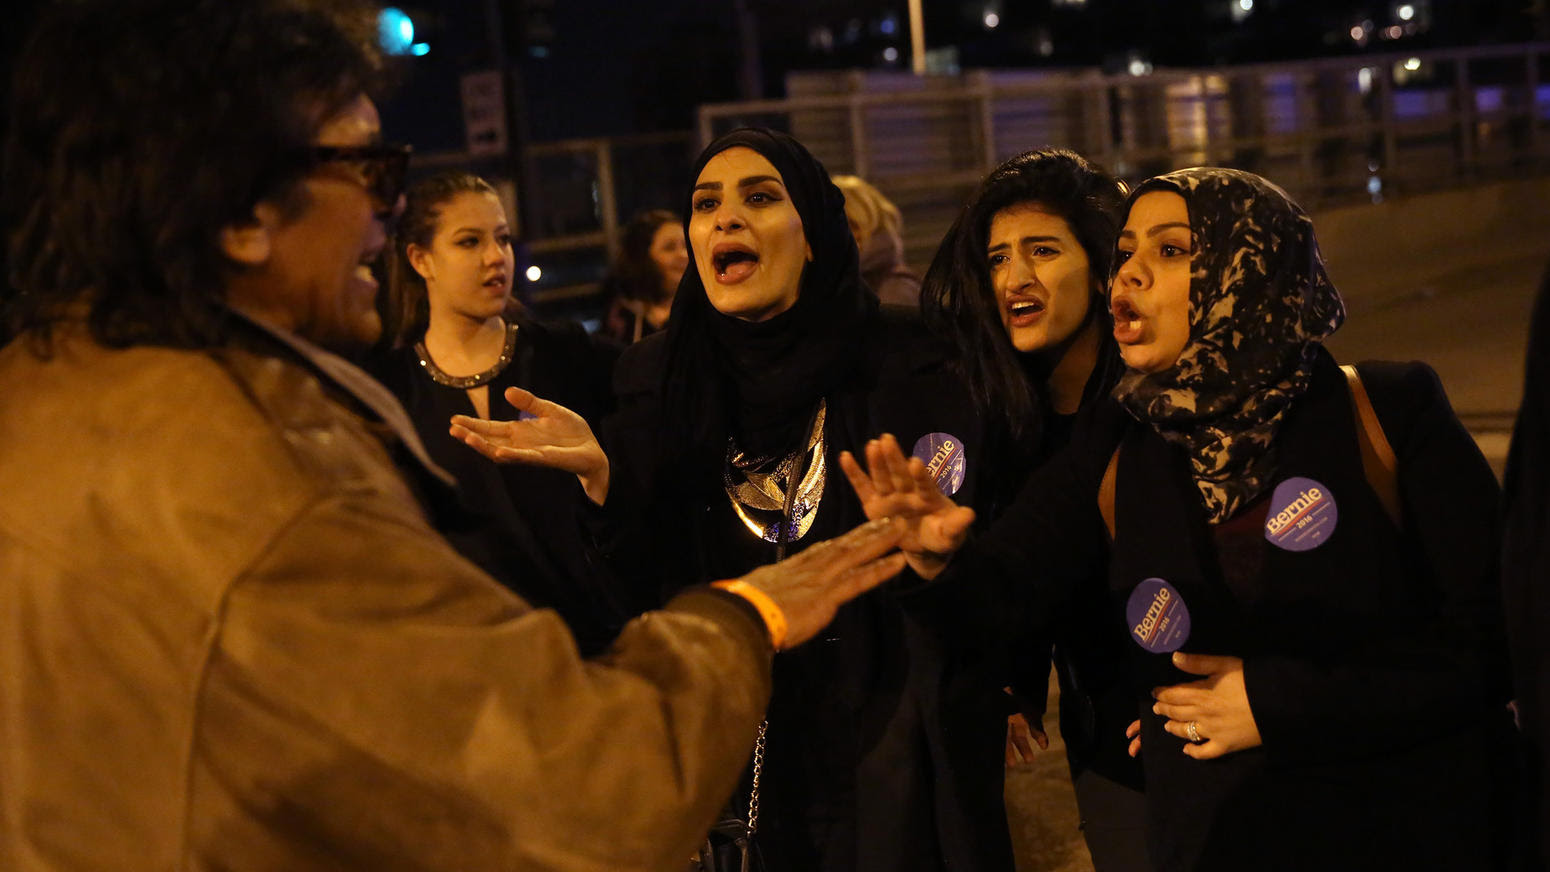 Trump supporters, protesters clash outside